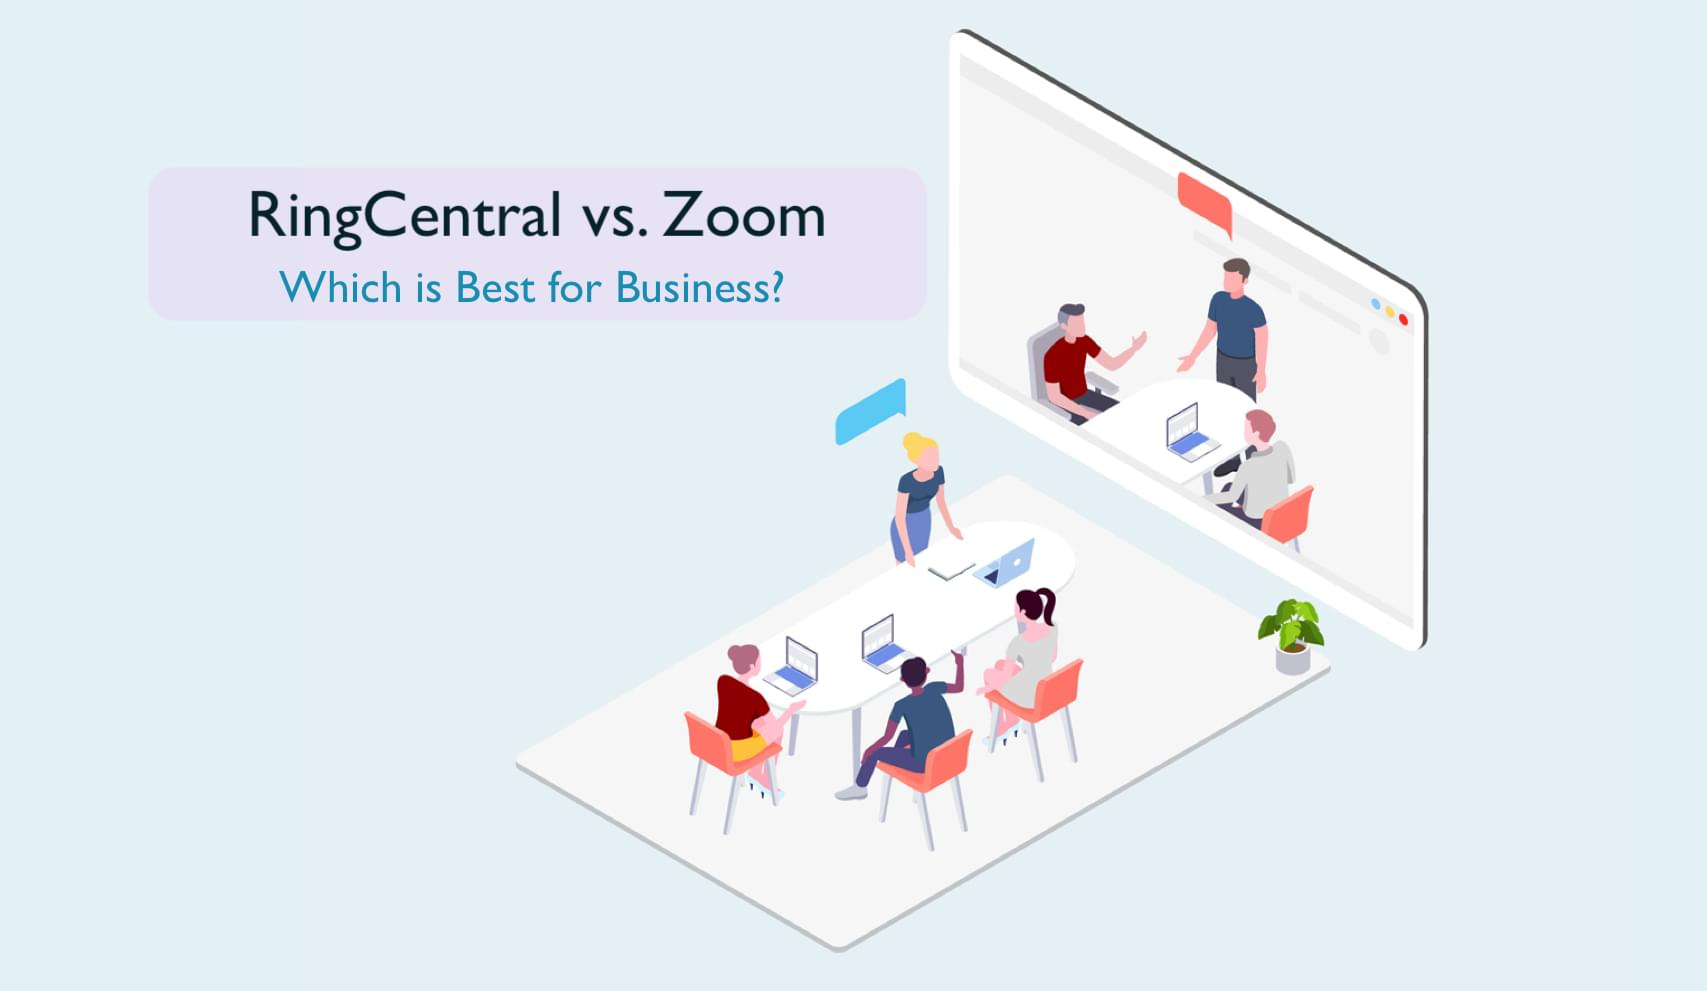 RingCentral vs Zoom: Which is Best for Business? [Comparison]